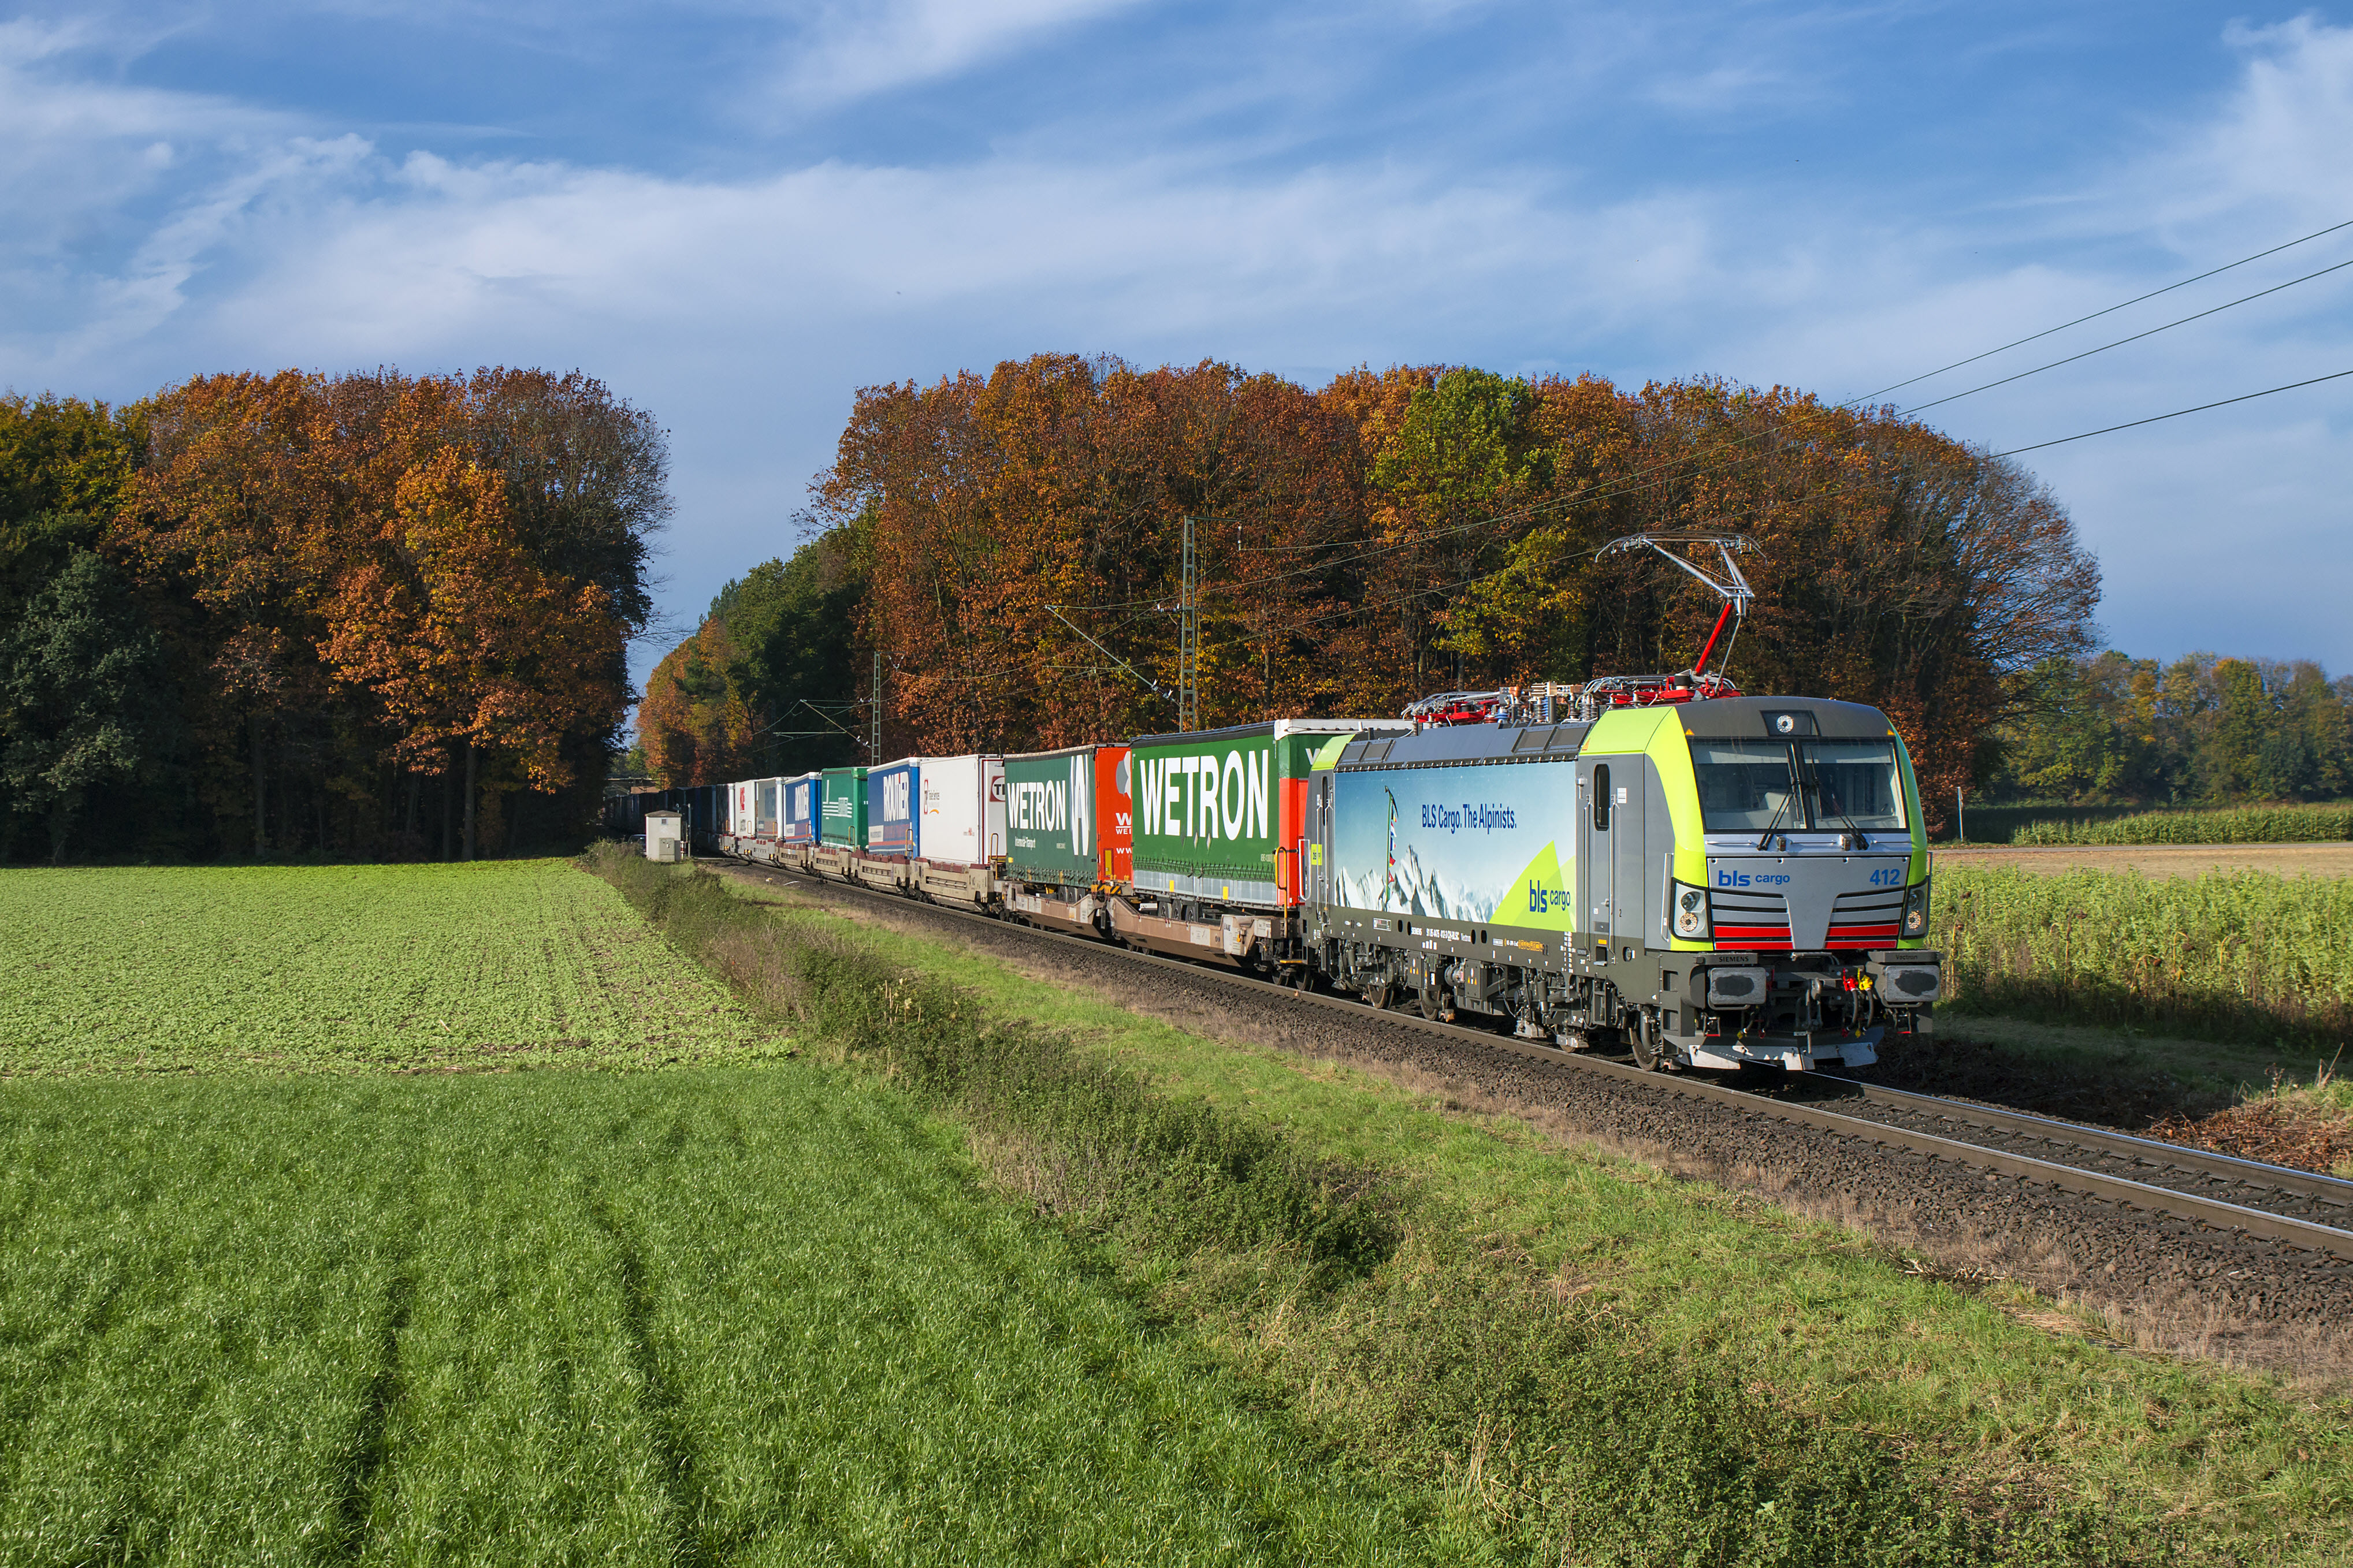 BLS Cargo Siemens Vectron locomotive and freight train